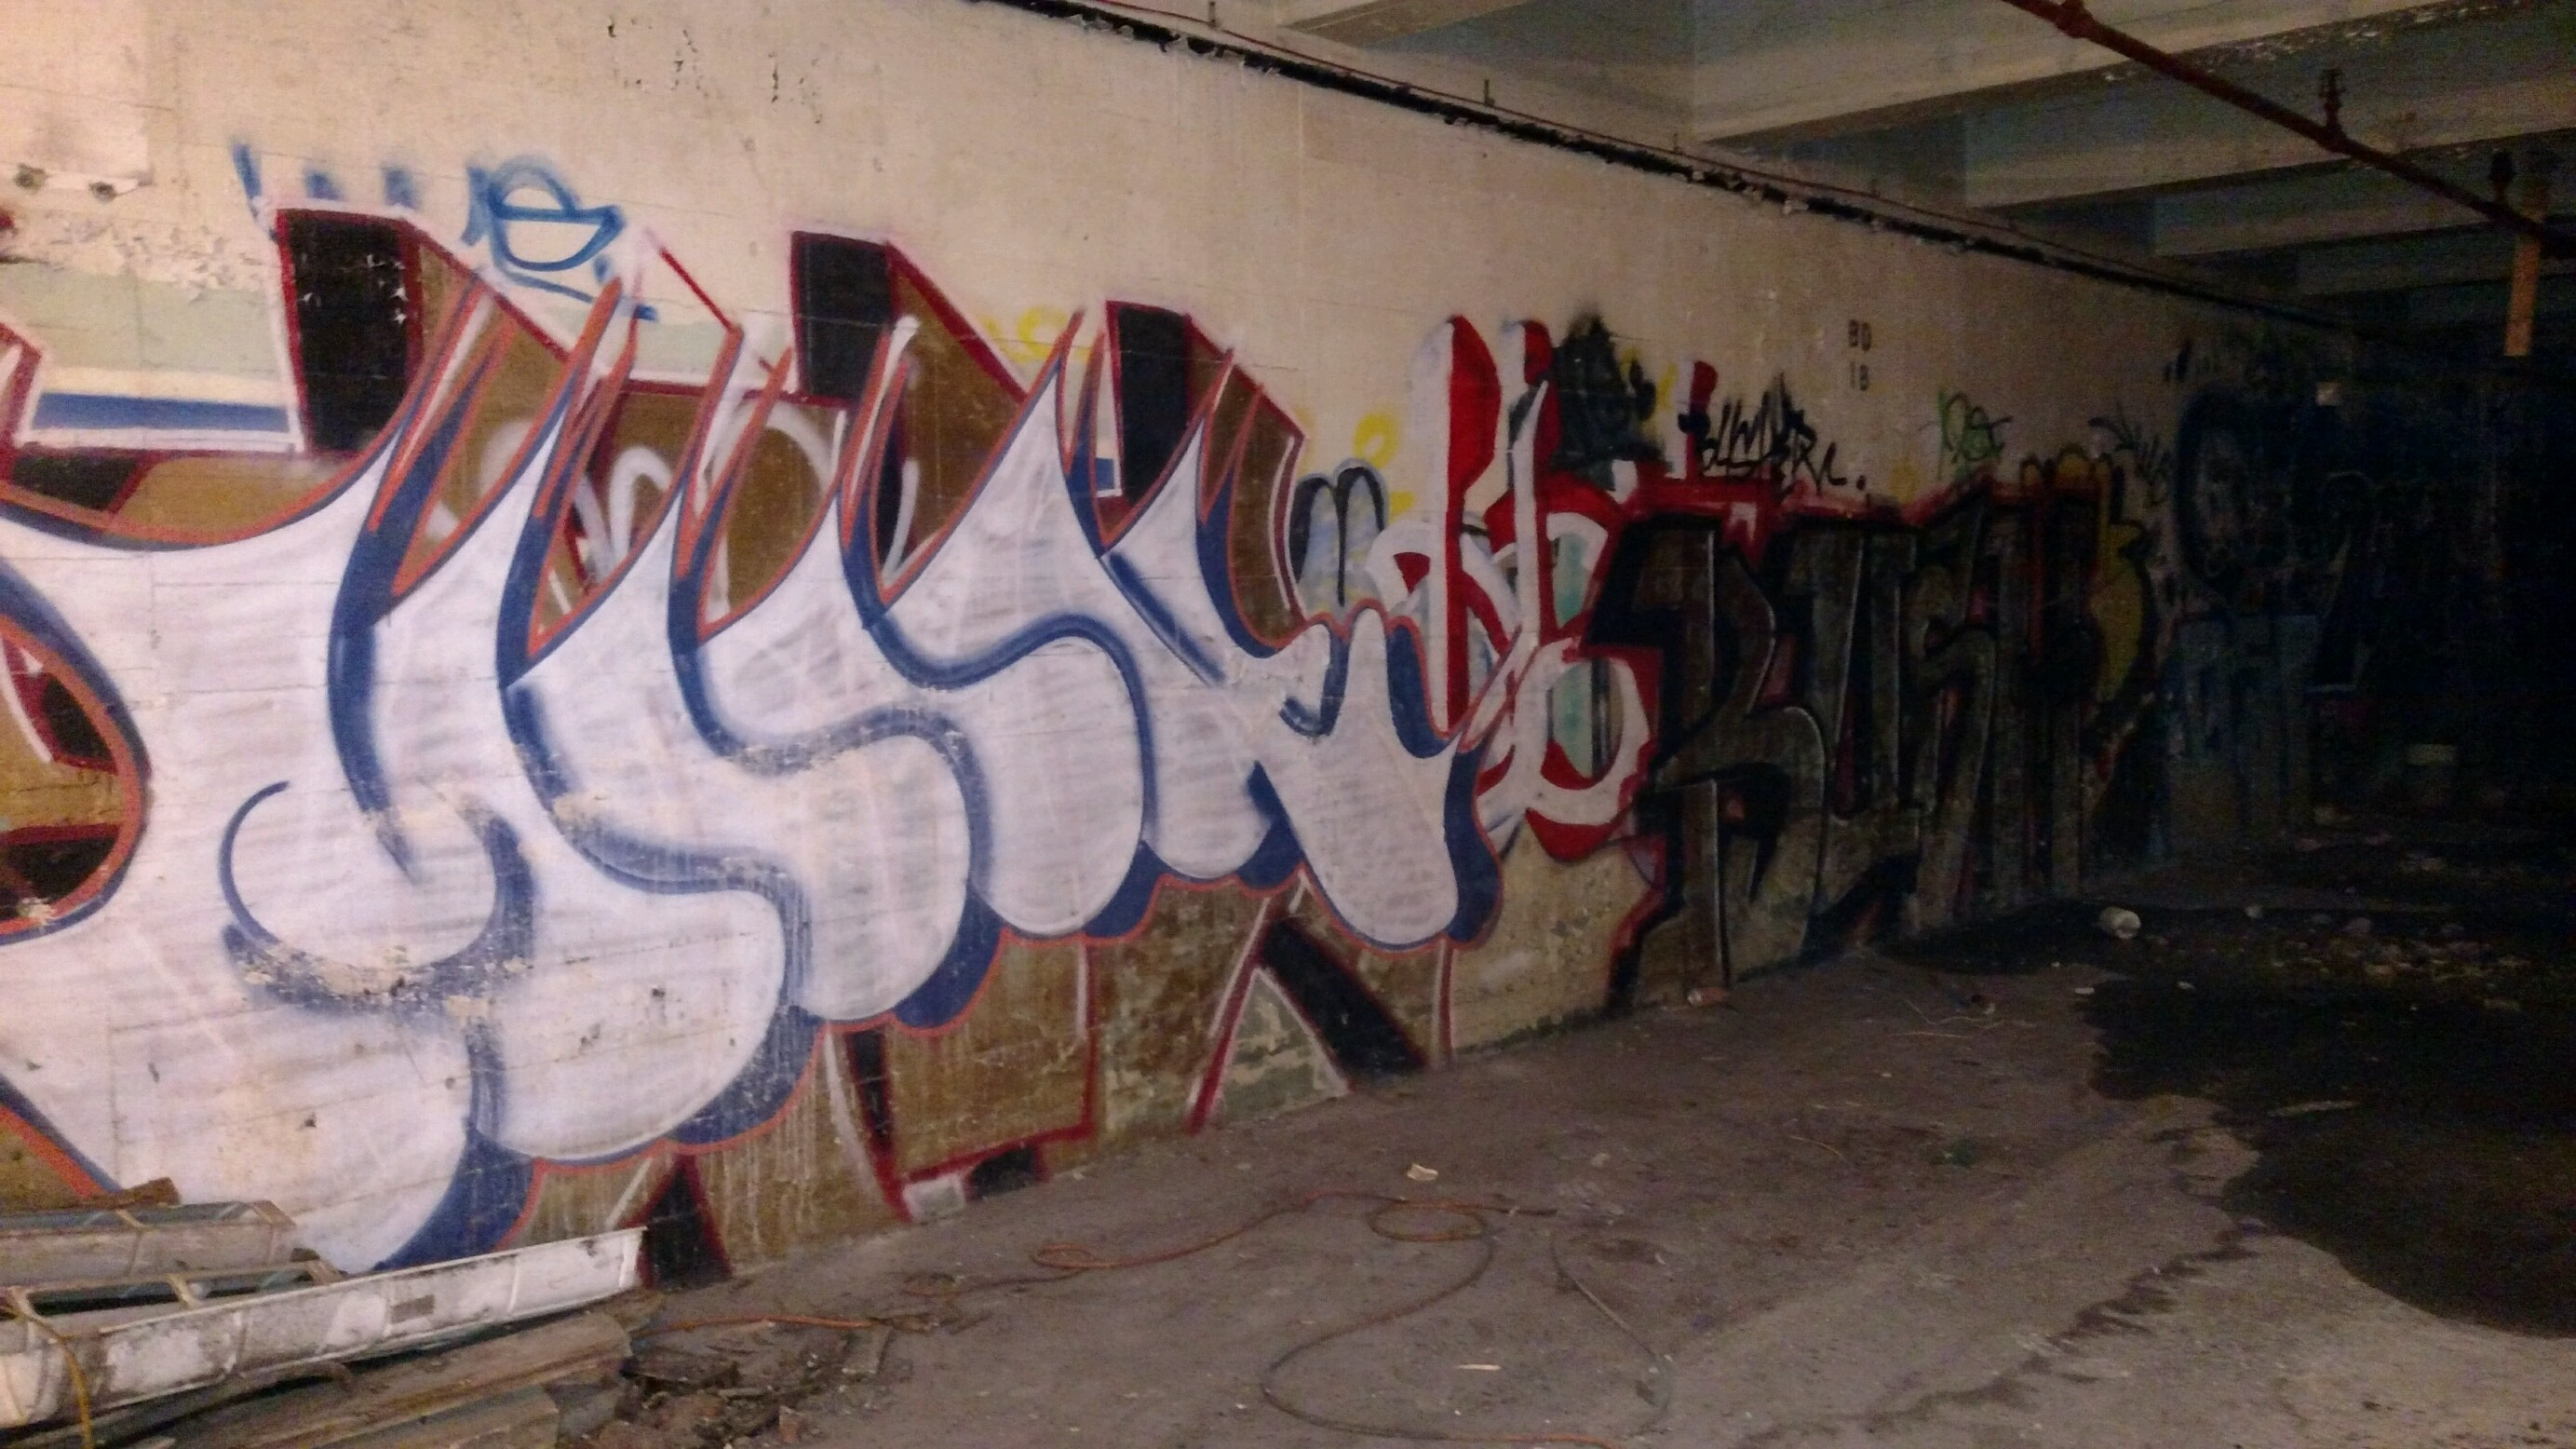 Graffiti at HGR Industrial Surplus